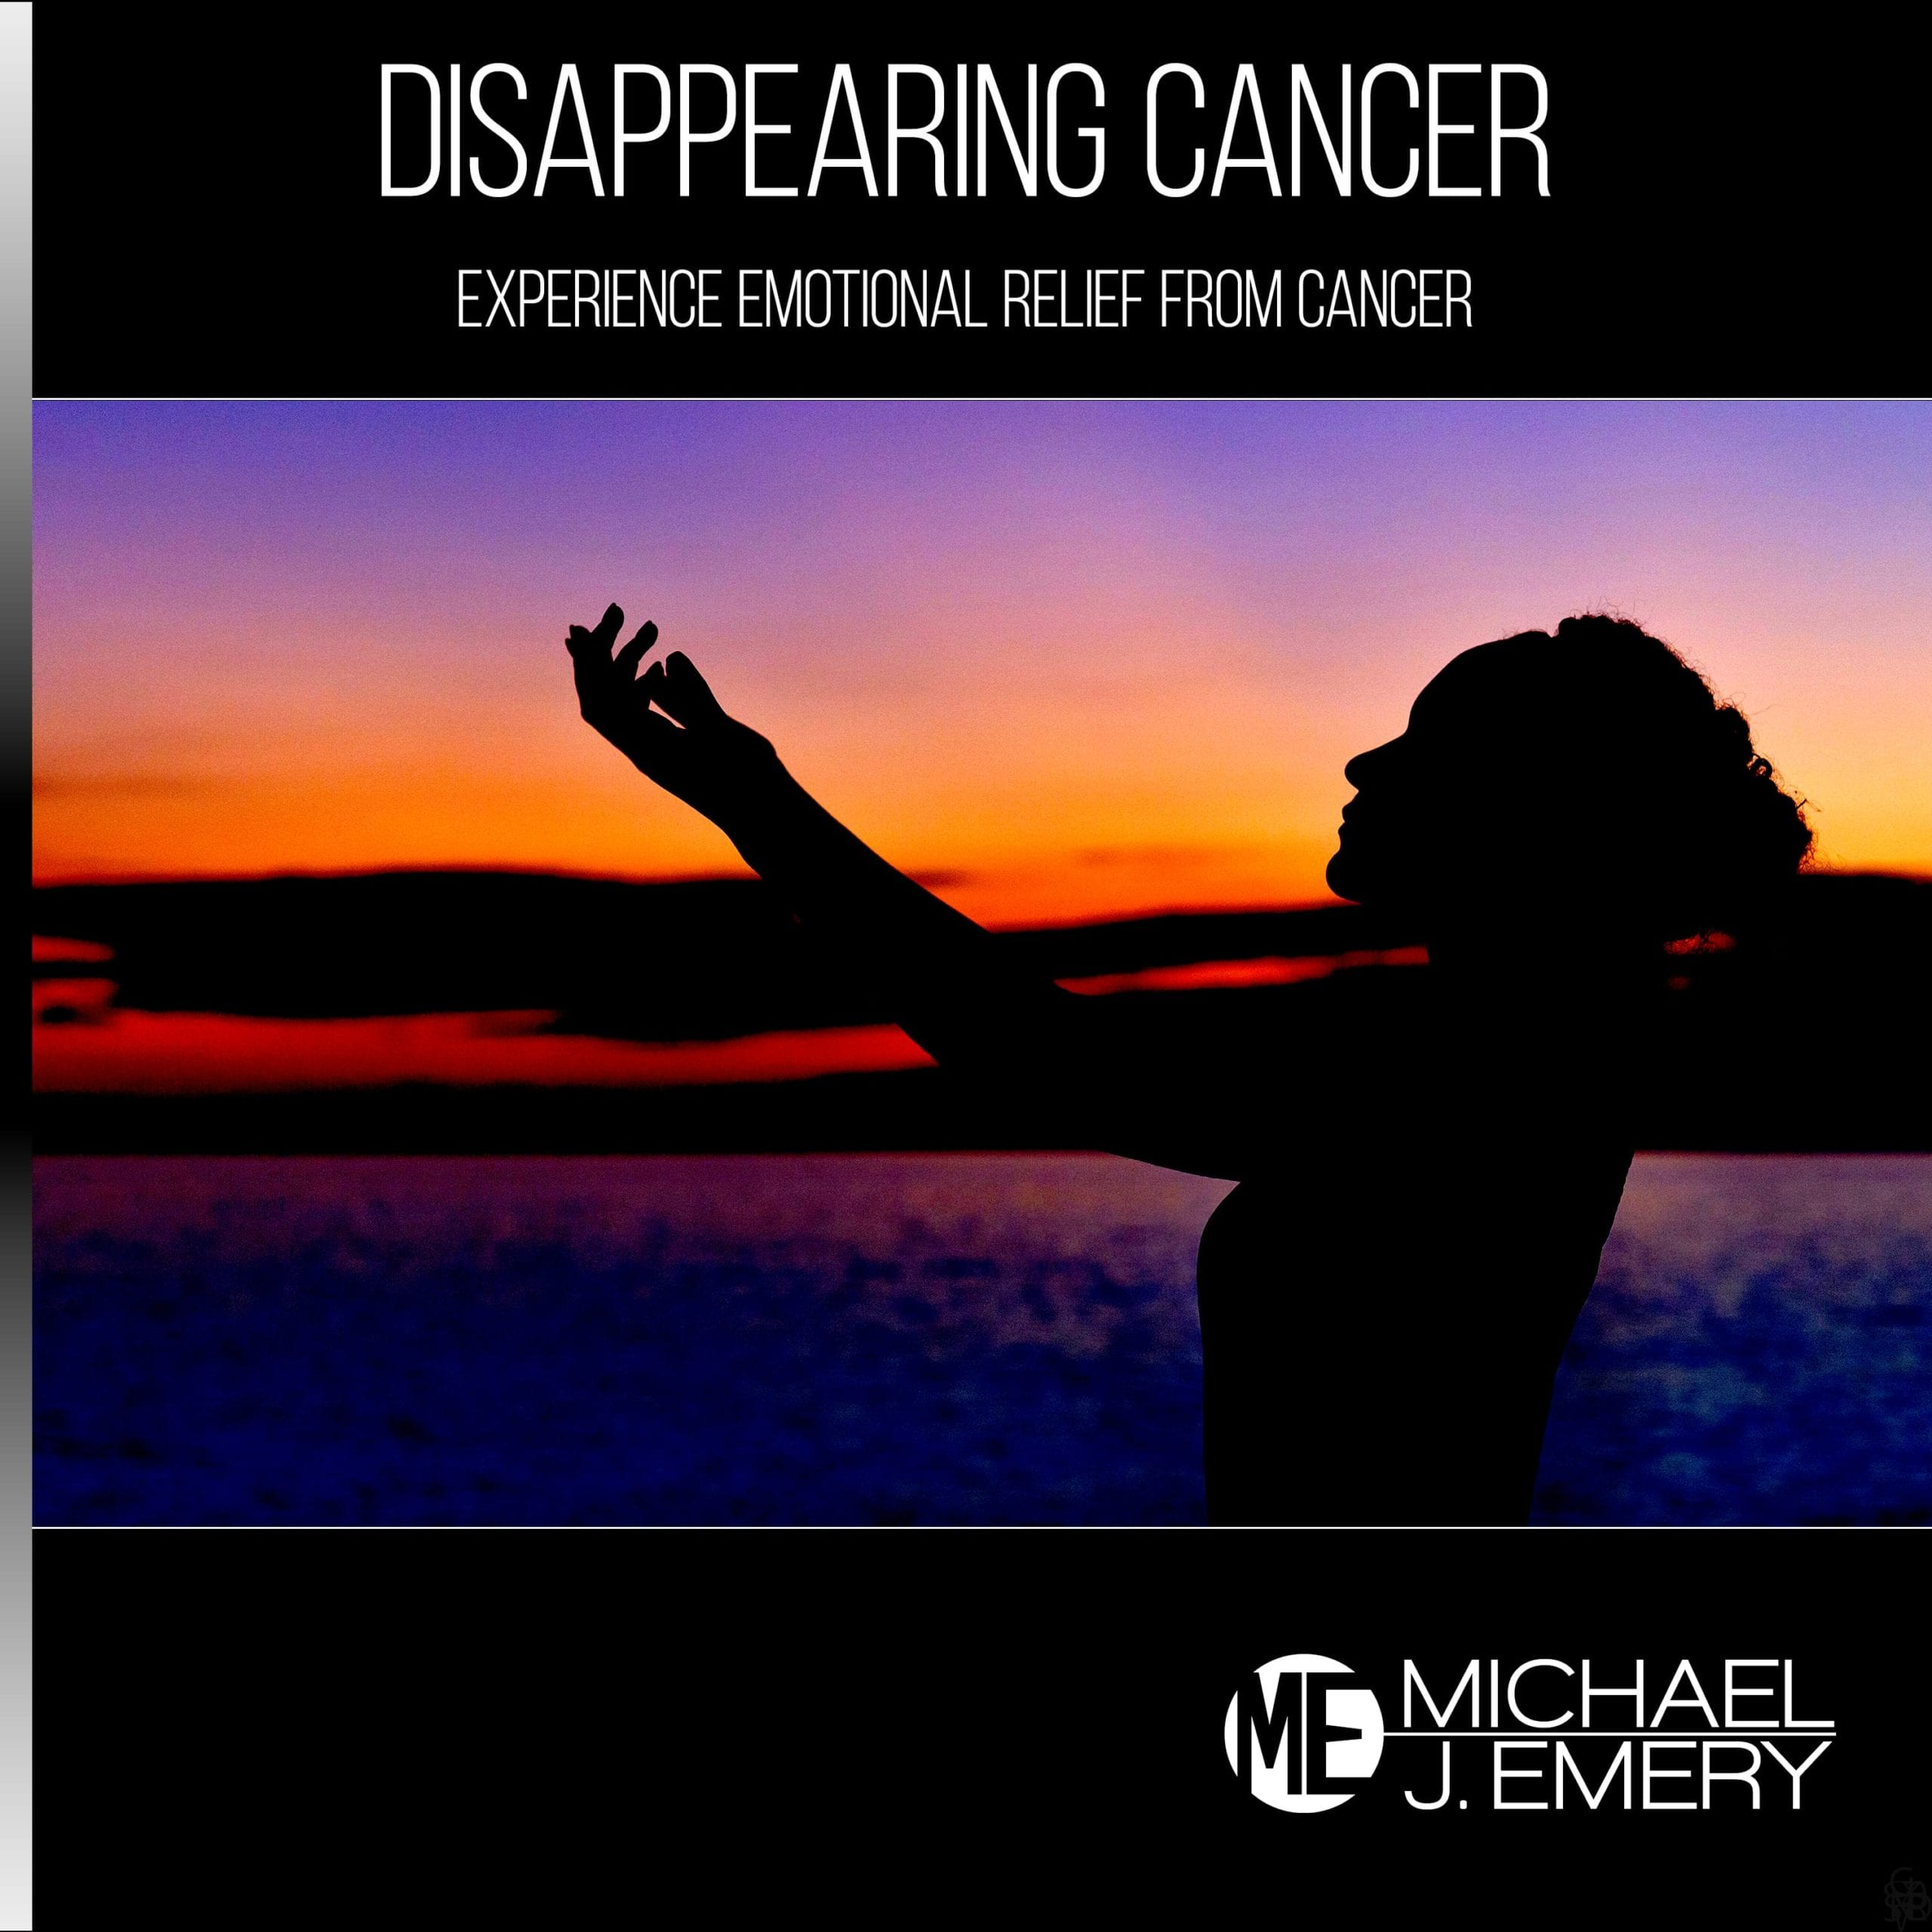 Disappearing-Cancer